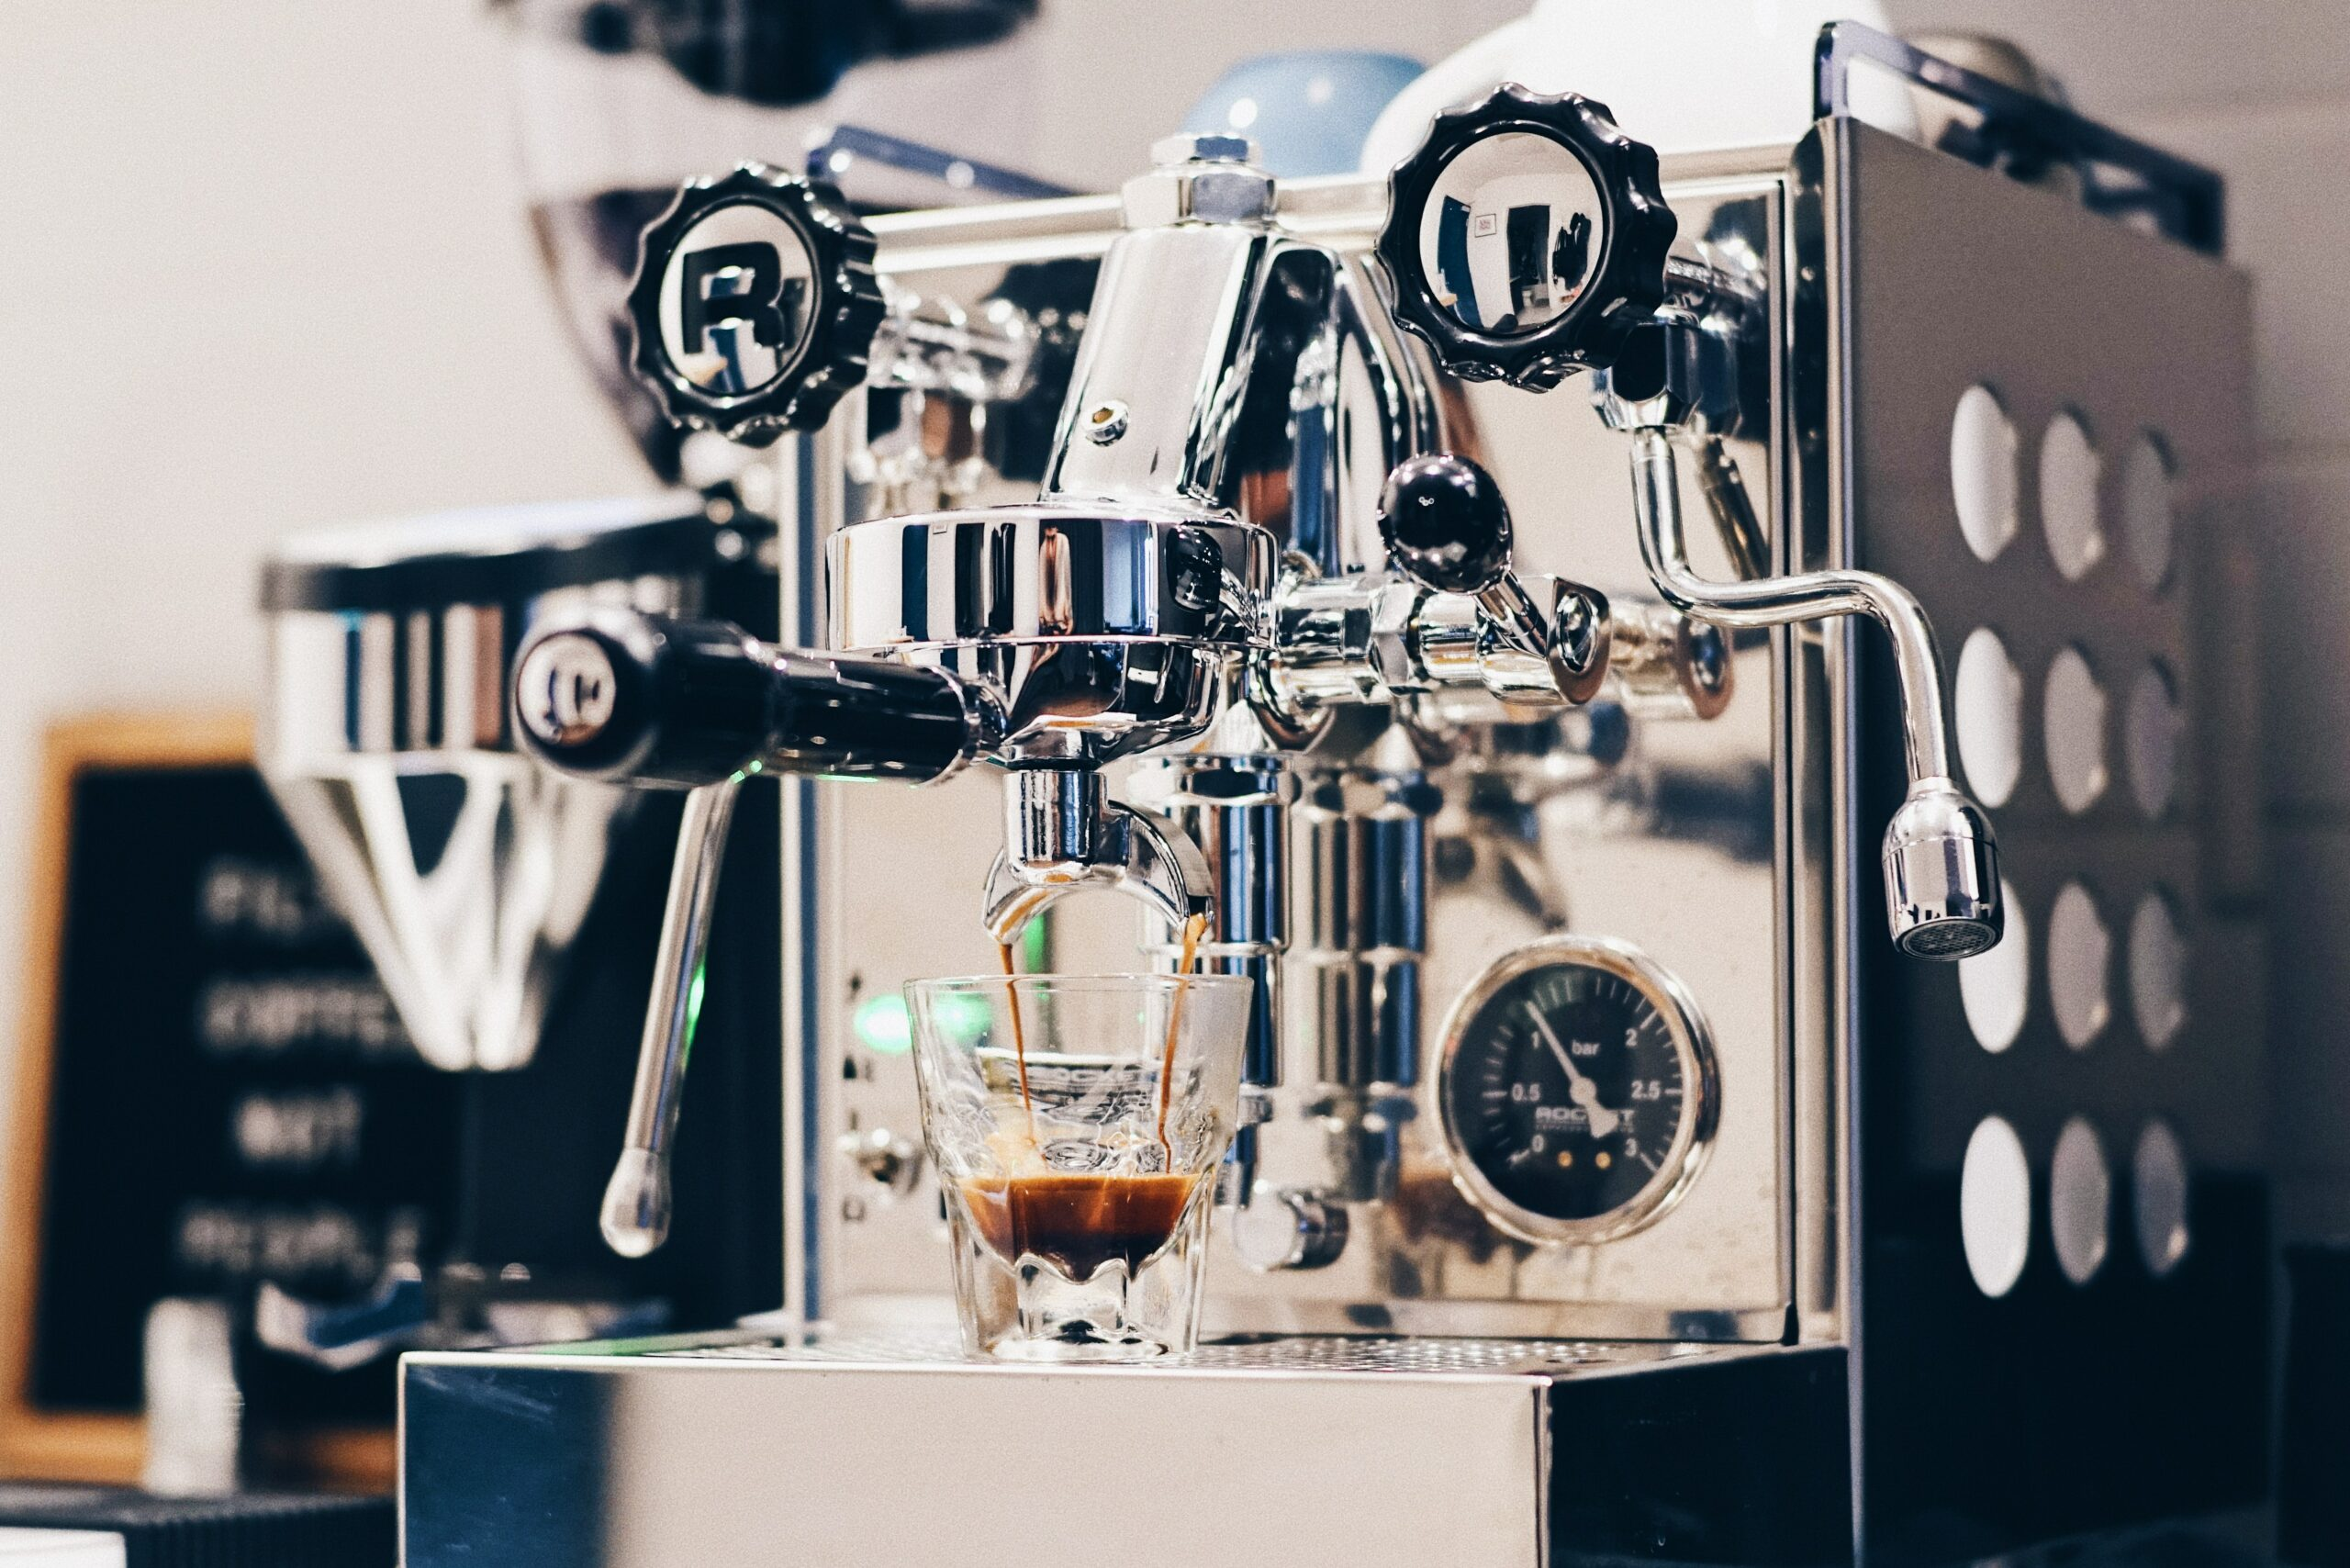 best espresso machine for home 2020